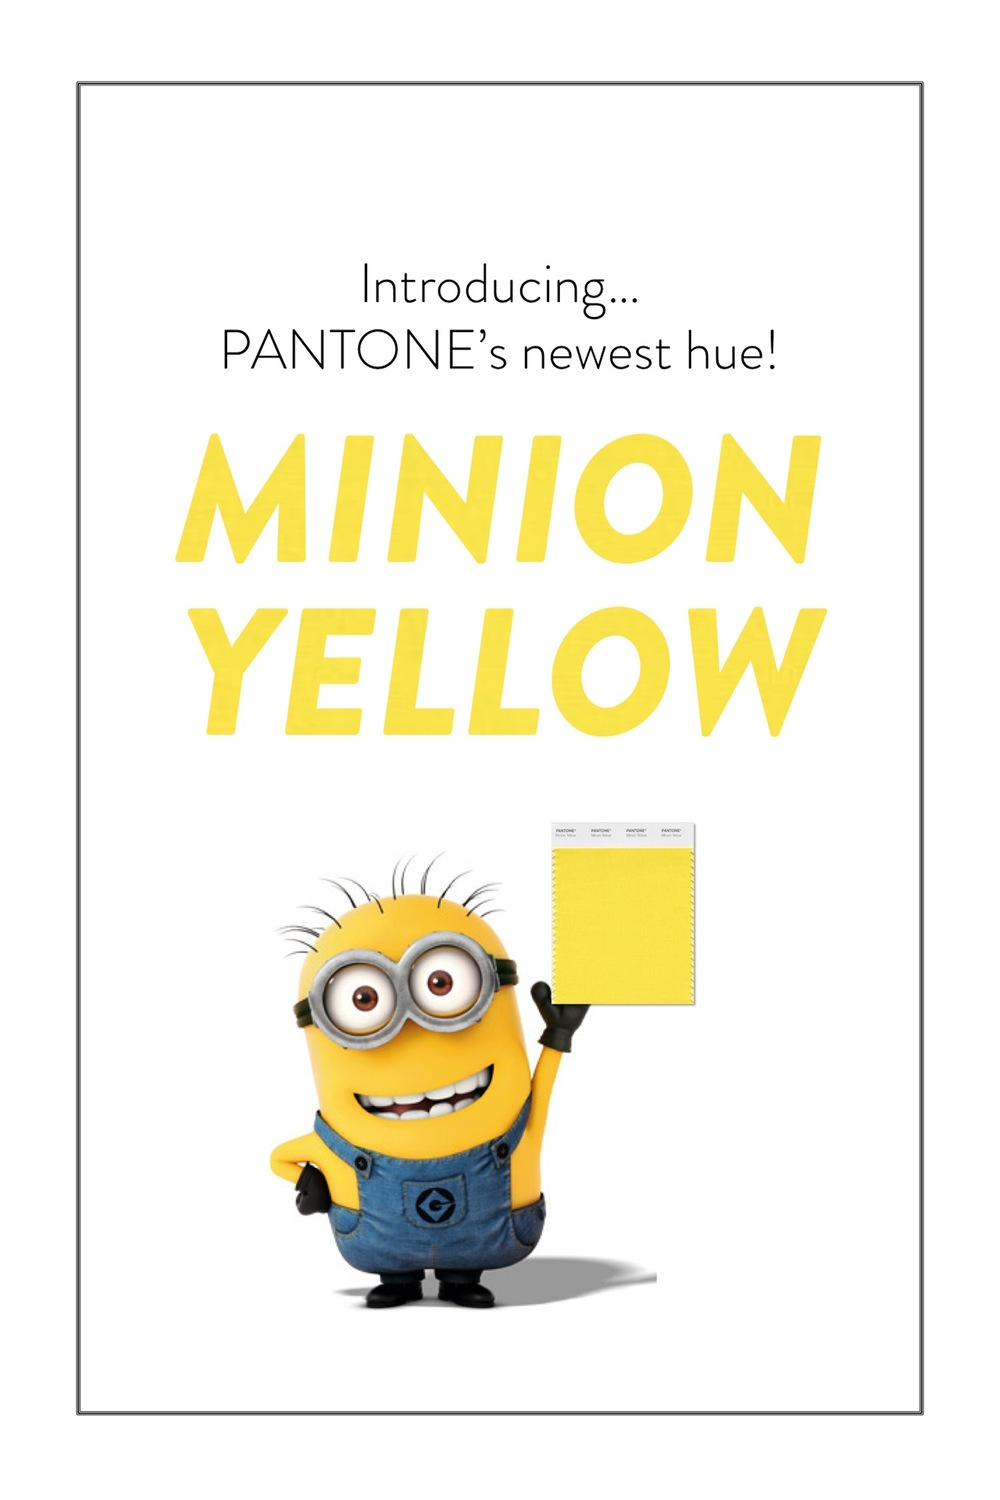 PANTONE's Minion Yellow - The newest hue in Pantone's official color line up, inspired by Despicable Me!